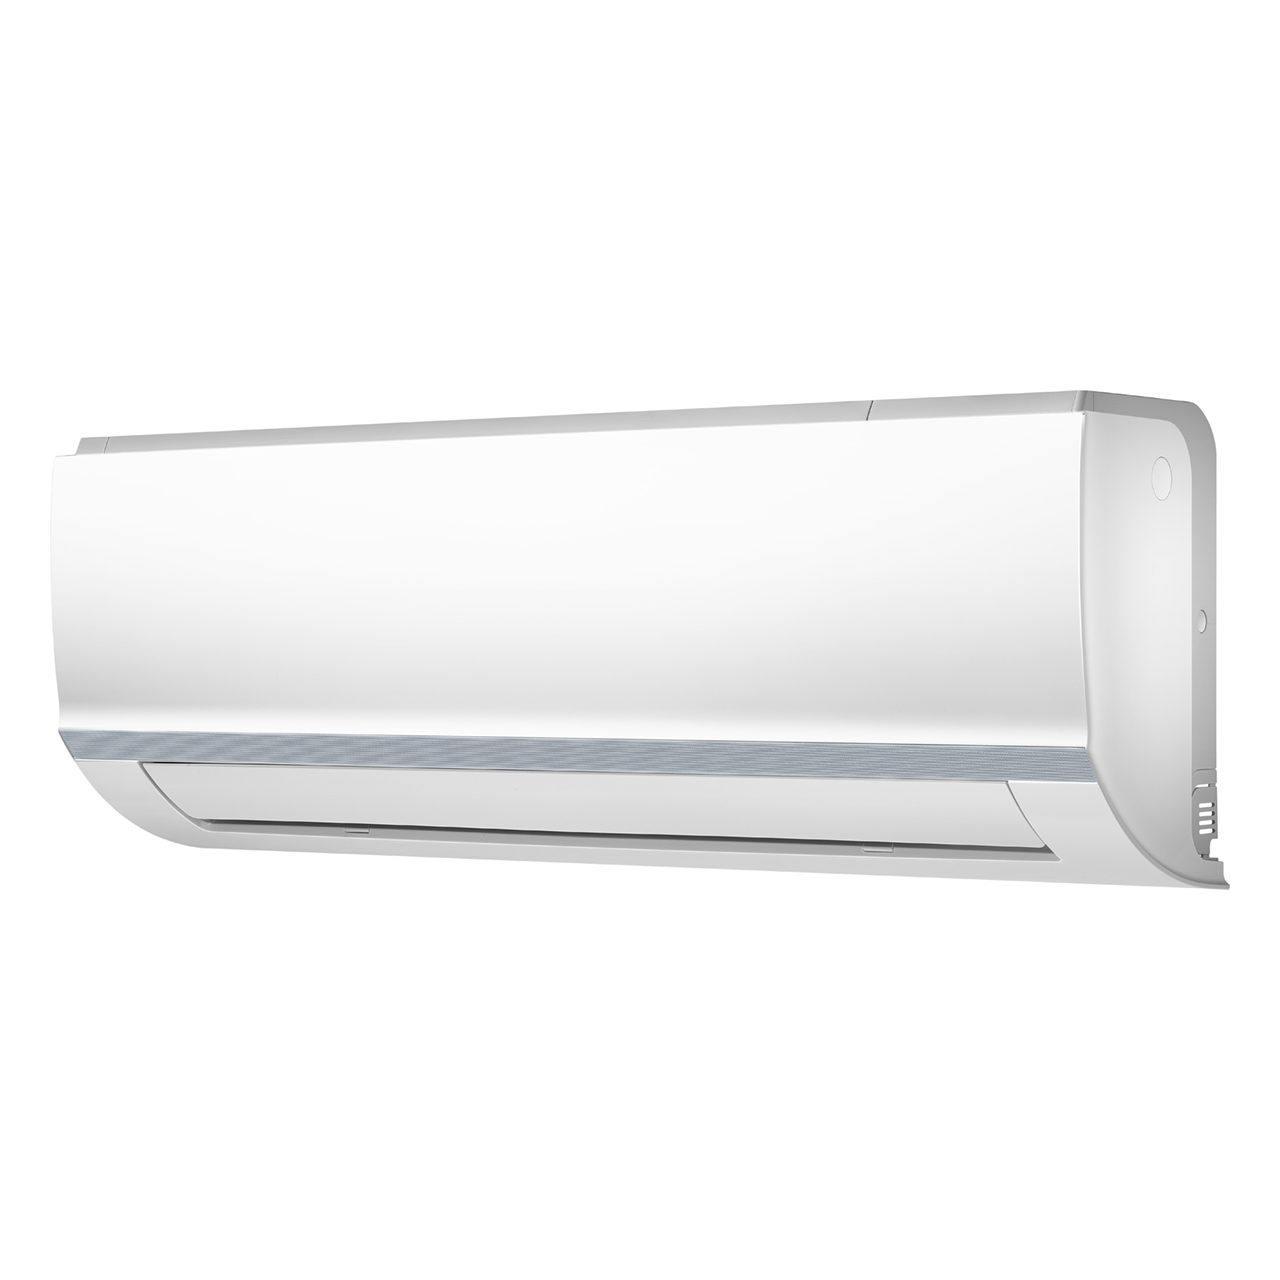 carrier-40mmhc-ductless-system-highwall-indoor-unit-cooling-only